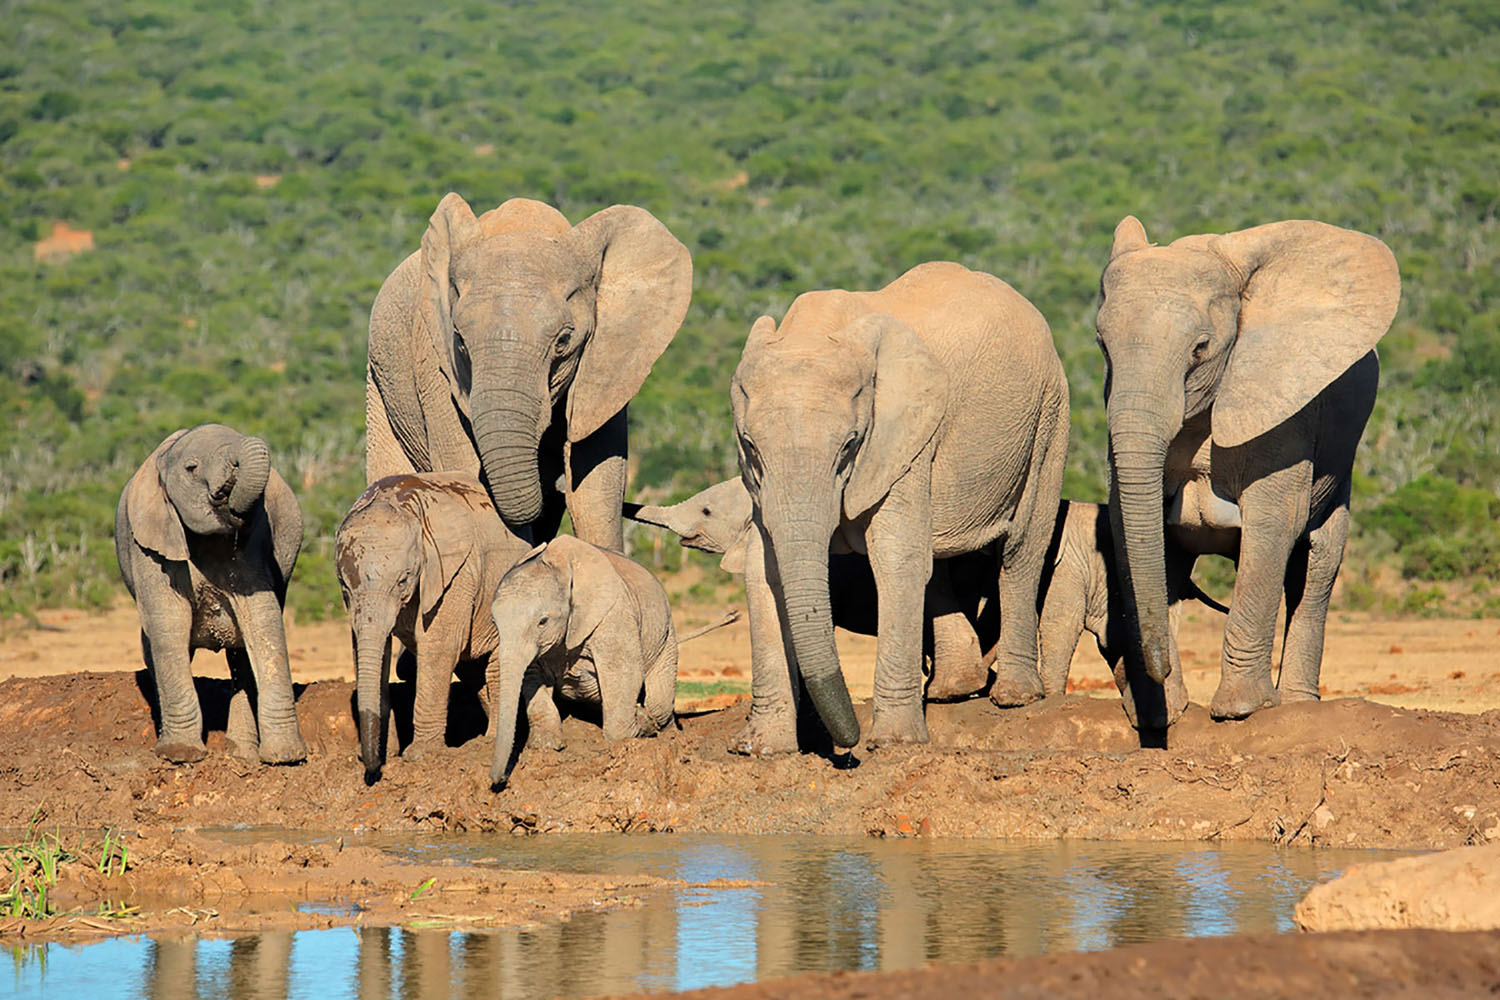 A family of elephants at Addo Elephant Park near Port Elizabeth, South Africa.